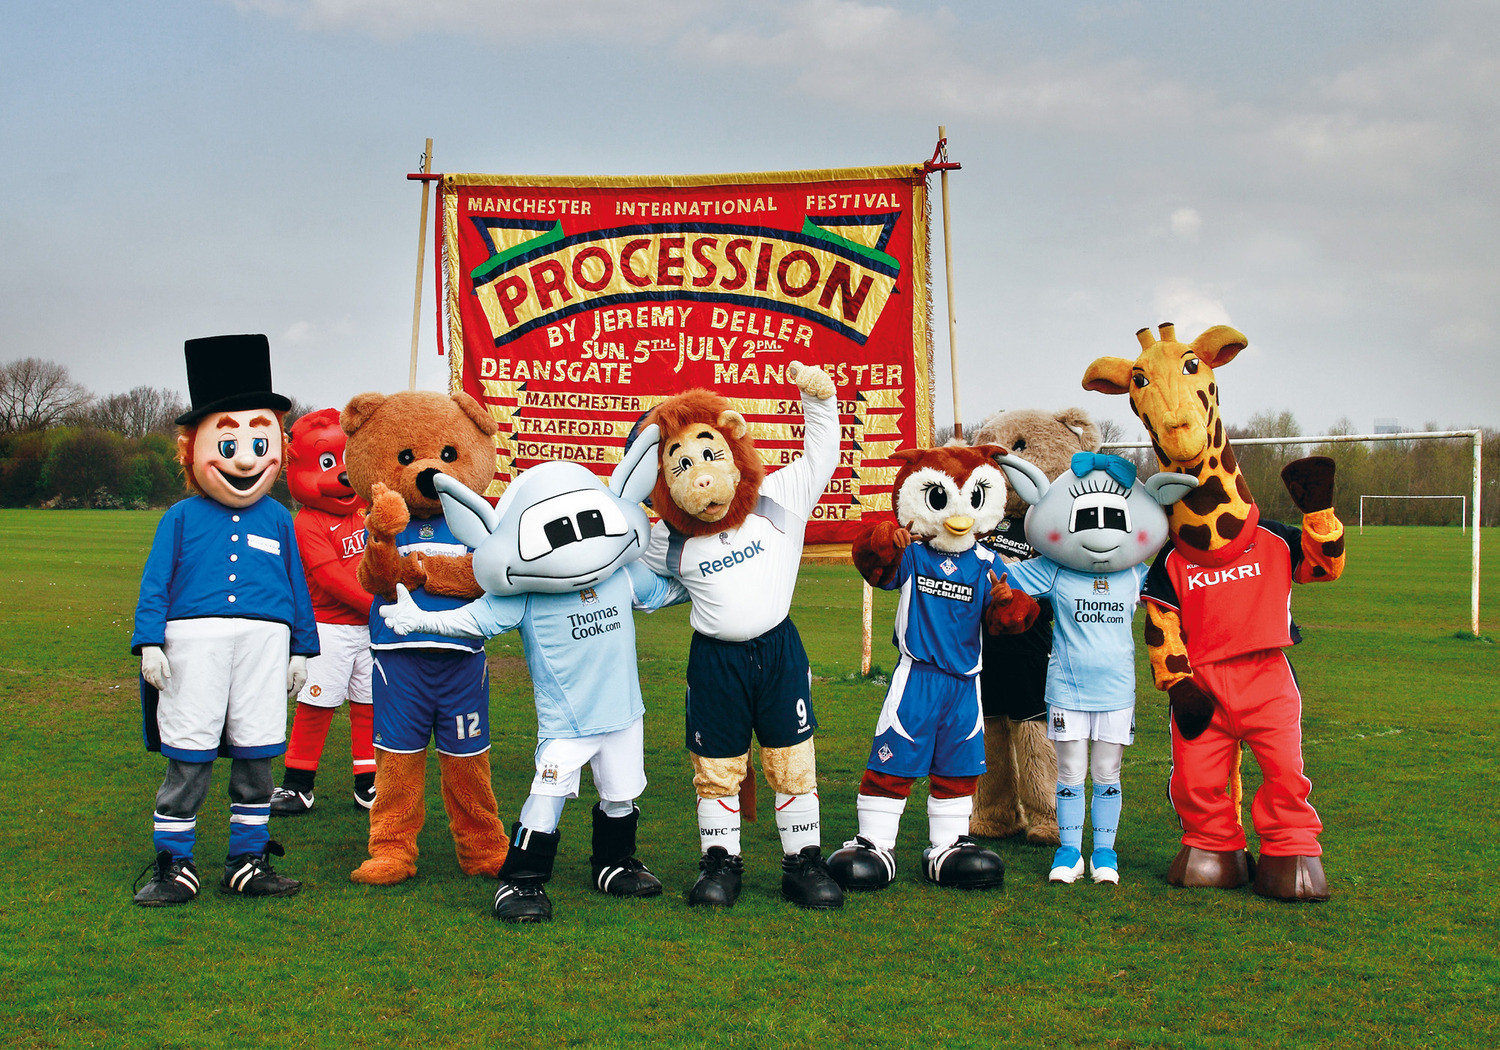 Procession, 2009. Publicity shot with Mancunian sports mascots.